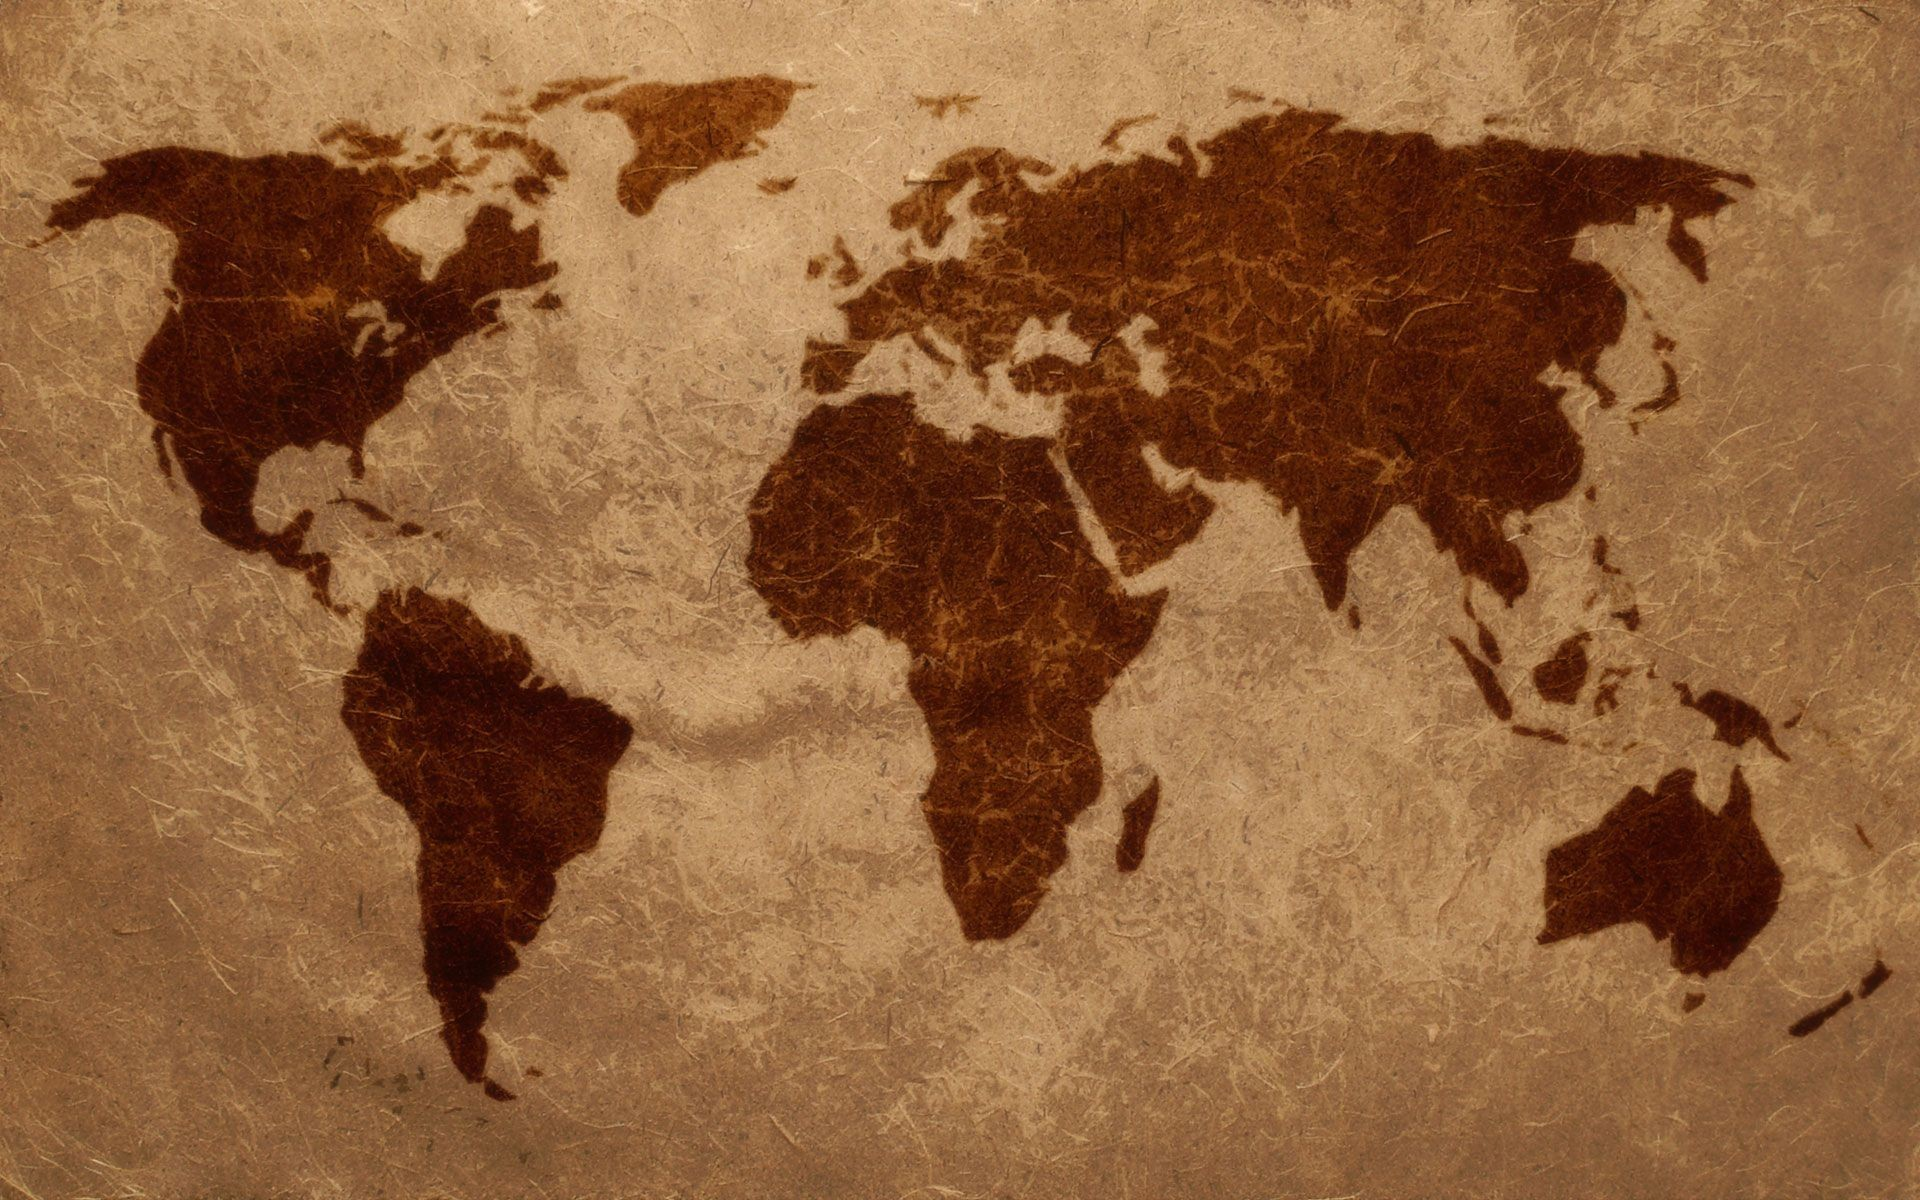 World Map Wallpaper ① Download Free Amazing Backgrounds For - World map ipad wallpaper